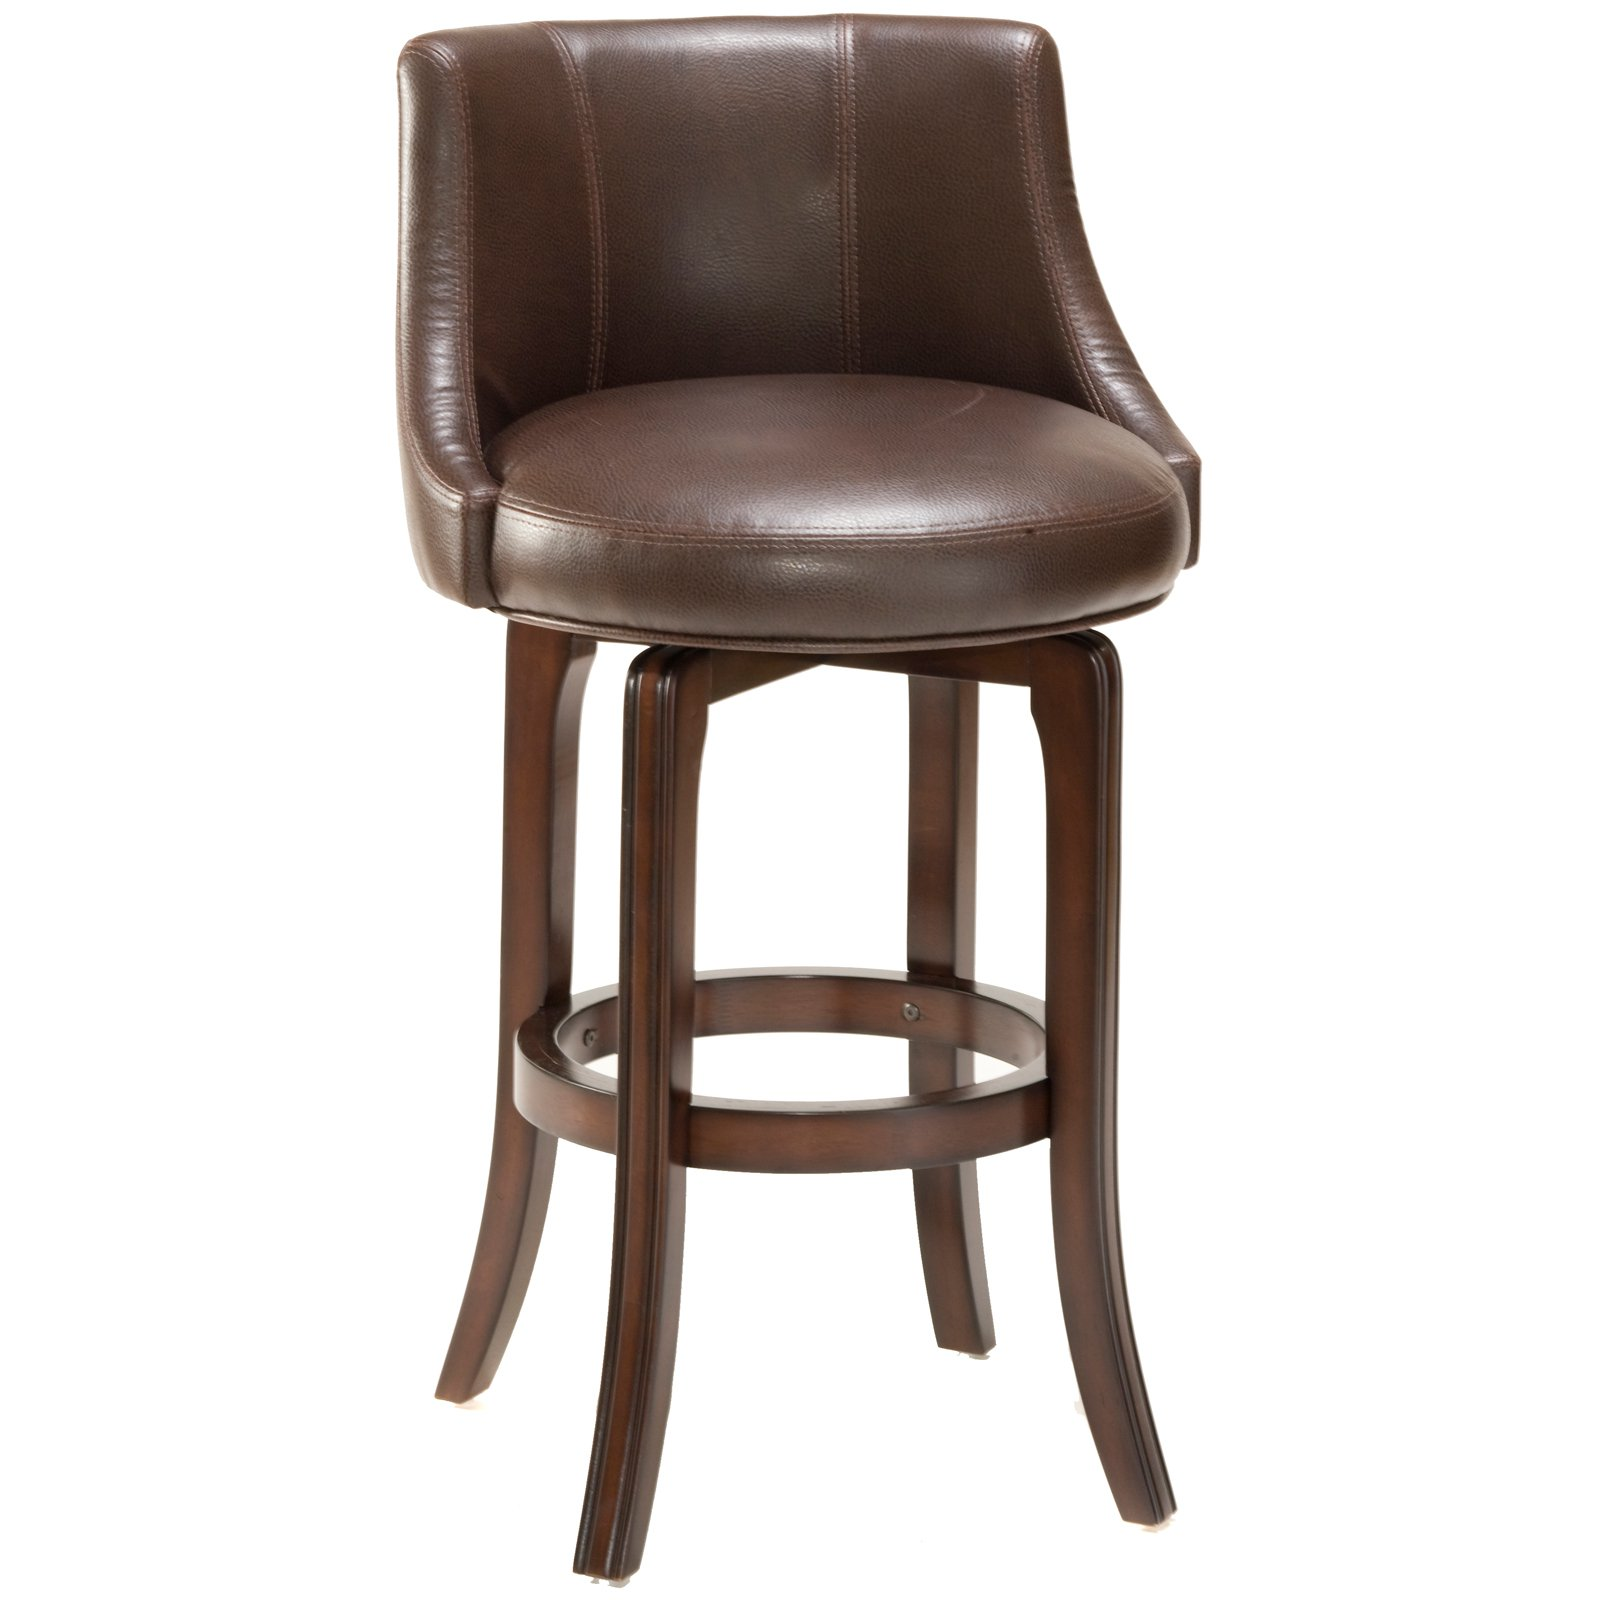 Hillsdale Napa Valley 30 In Swivel Bar Stool Brown Leather Seat